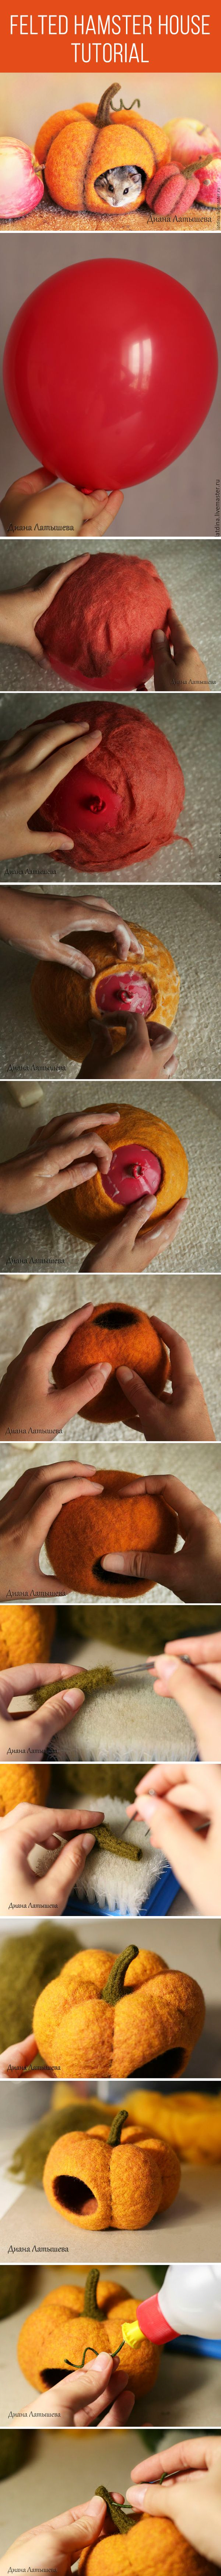 Felted hamster house tutorial